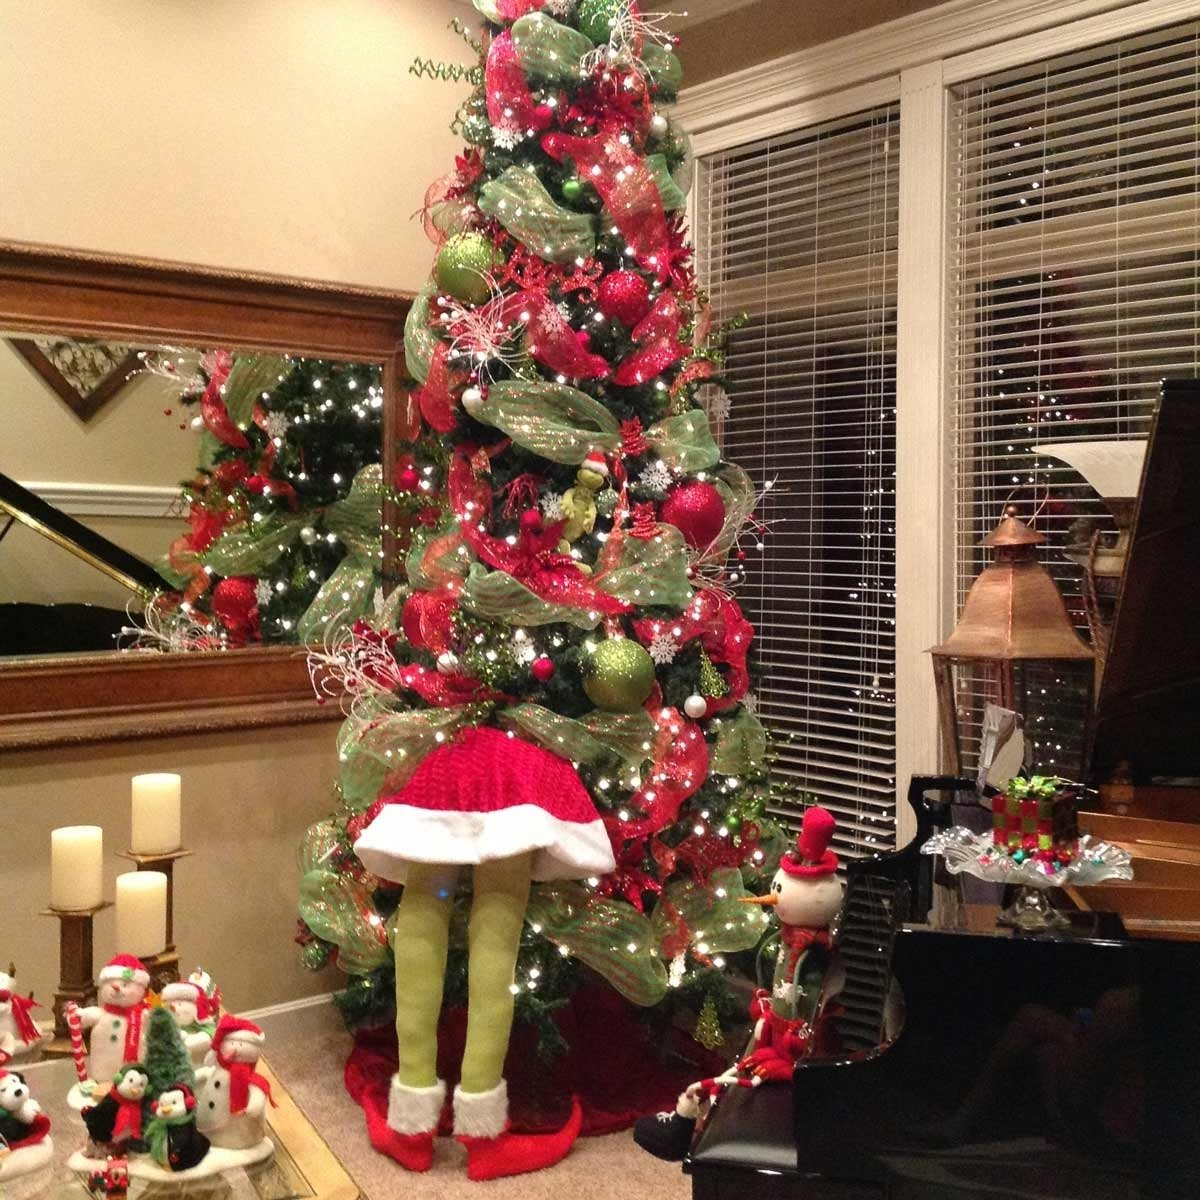 10 Ideal Ideas For Decorating Christmas Trees 100 incredible christmas tree decorating ideas family handyman 1 2020